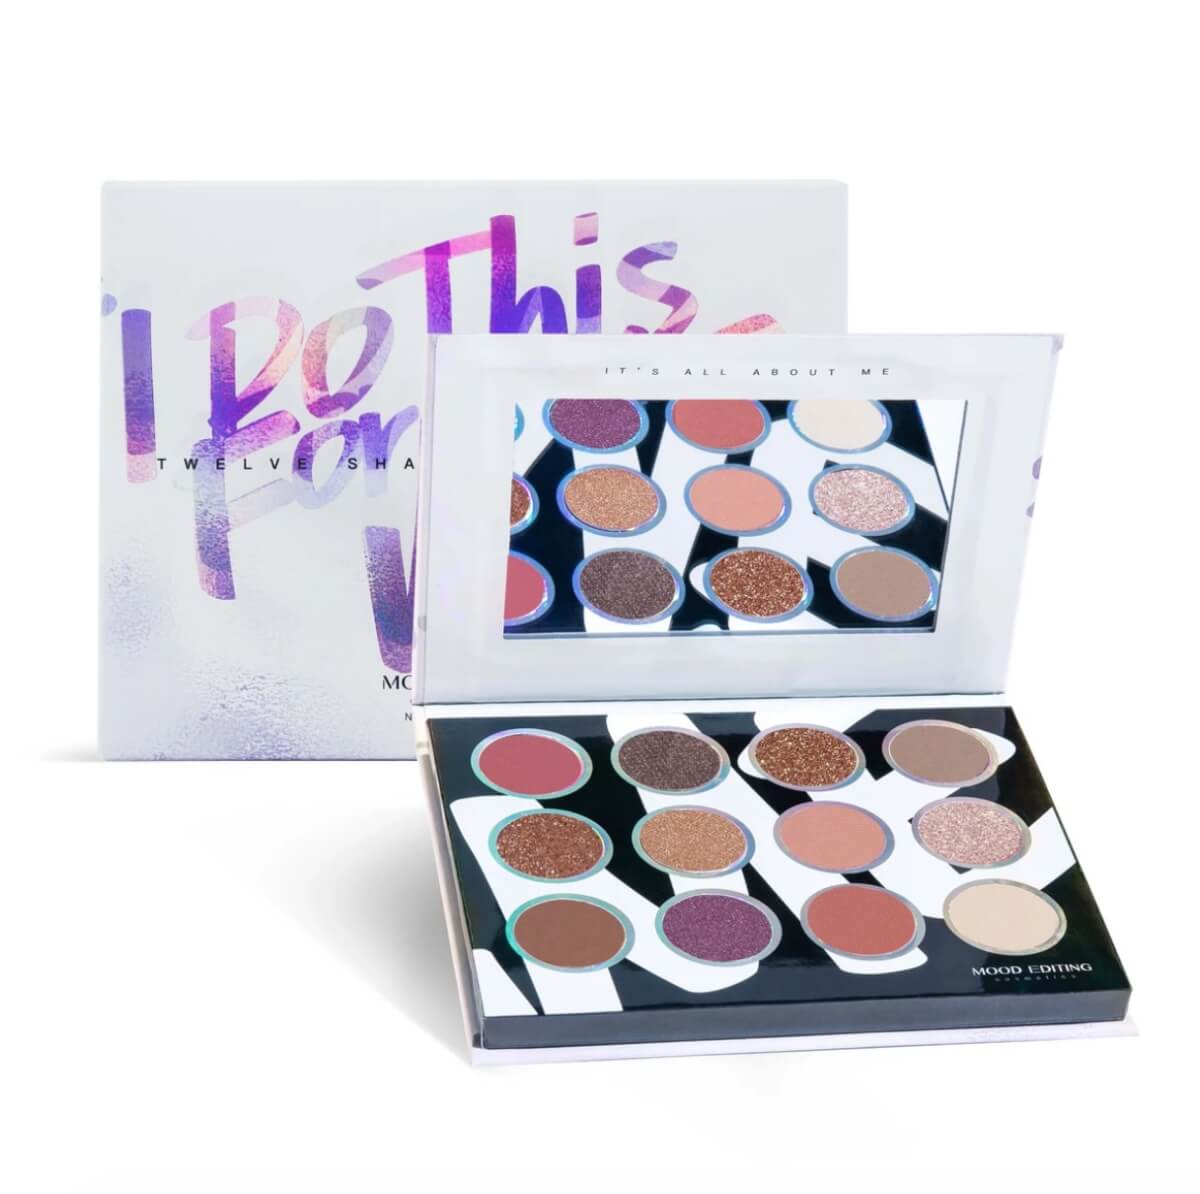 How to choose the Best Eyeshadow Palettes? - Best Shopping